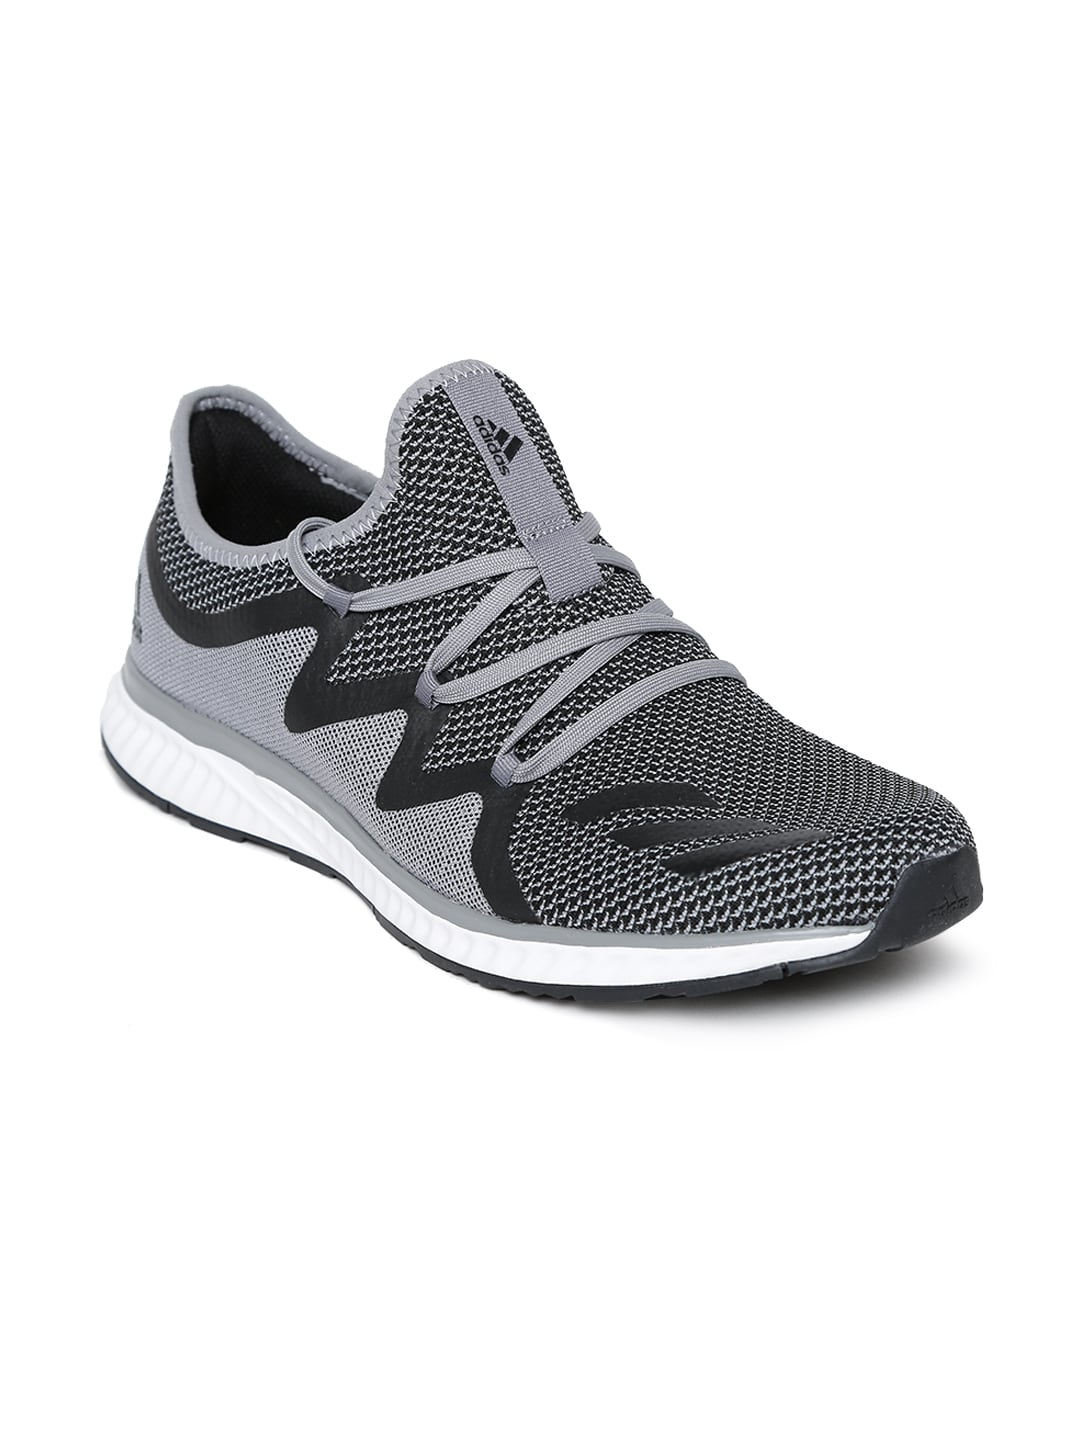 cheap for discount f7e01 35dad Adidas Sports Shoes - Buy Addidas Sports Shoes Online   Myntra